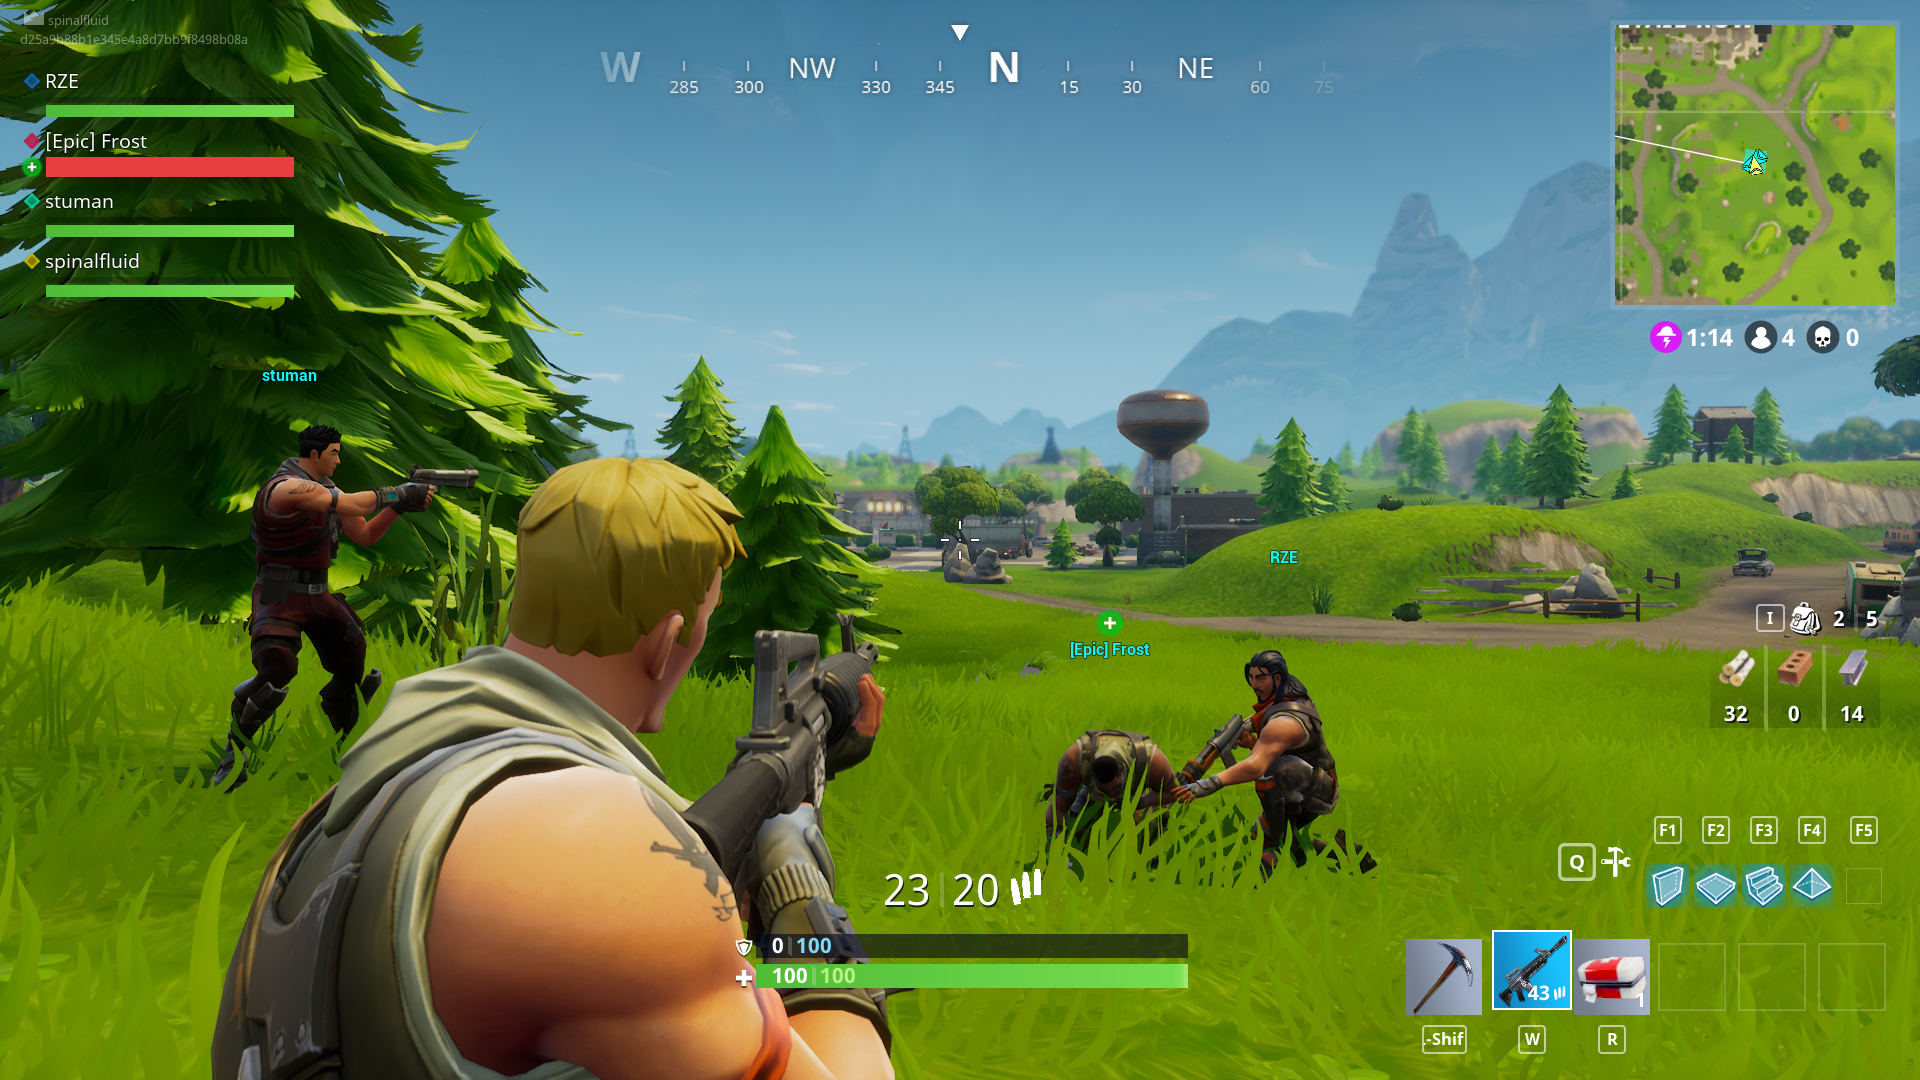 Fortnite: Battle Royale Patch Notes: Patch V3 2 Released | GameWatcher